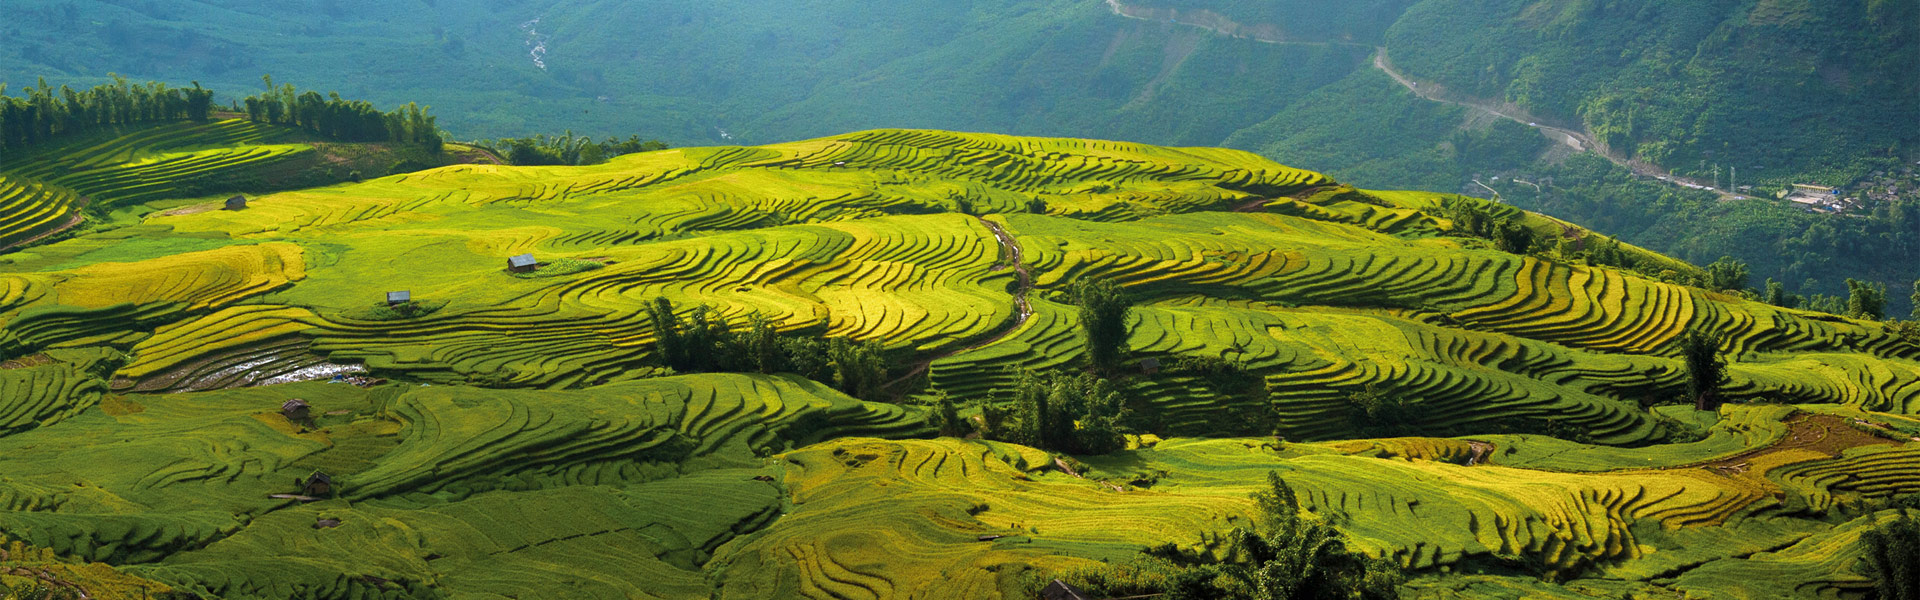 Top 10 Sports to try in Vietnam   Wendy Wu Tours Blog